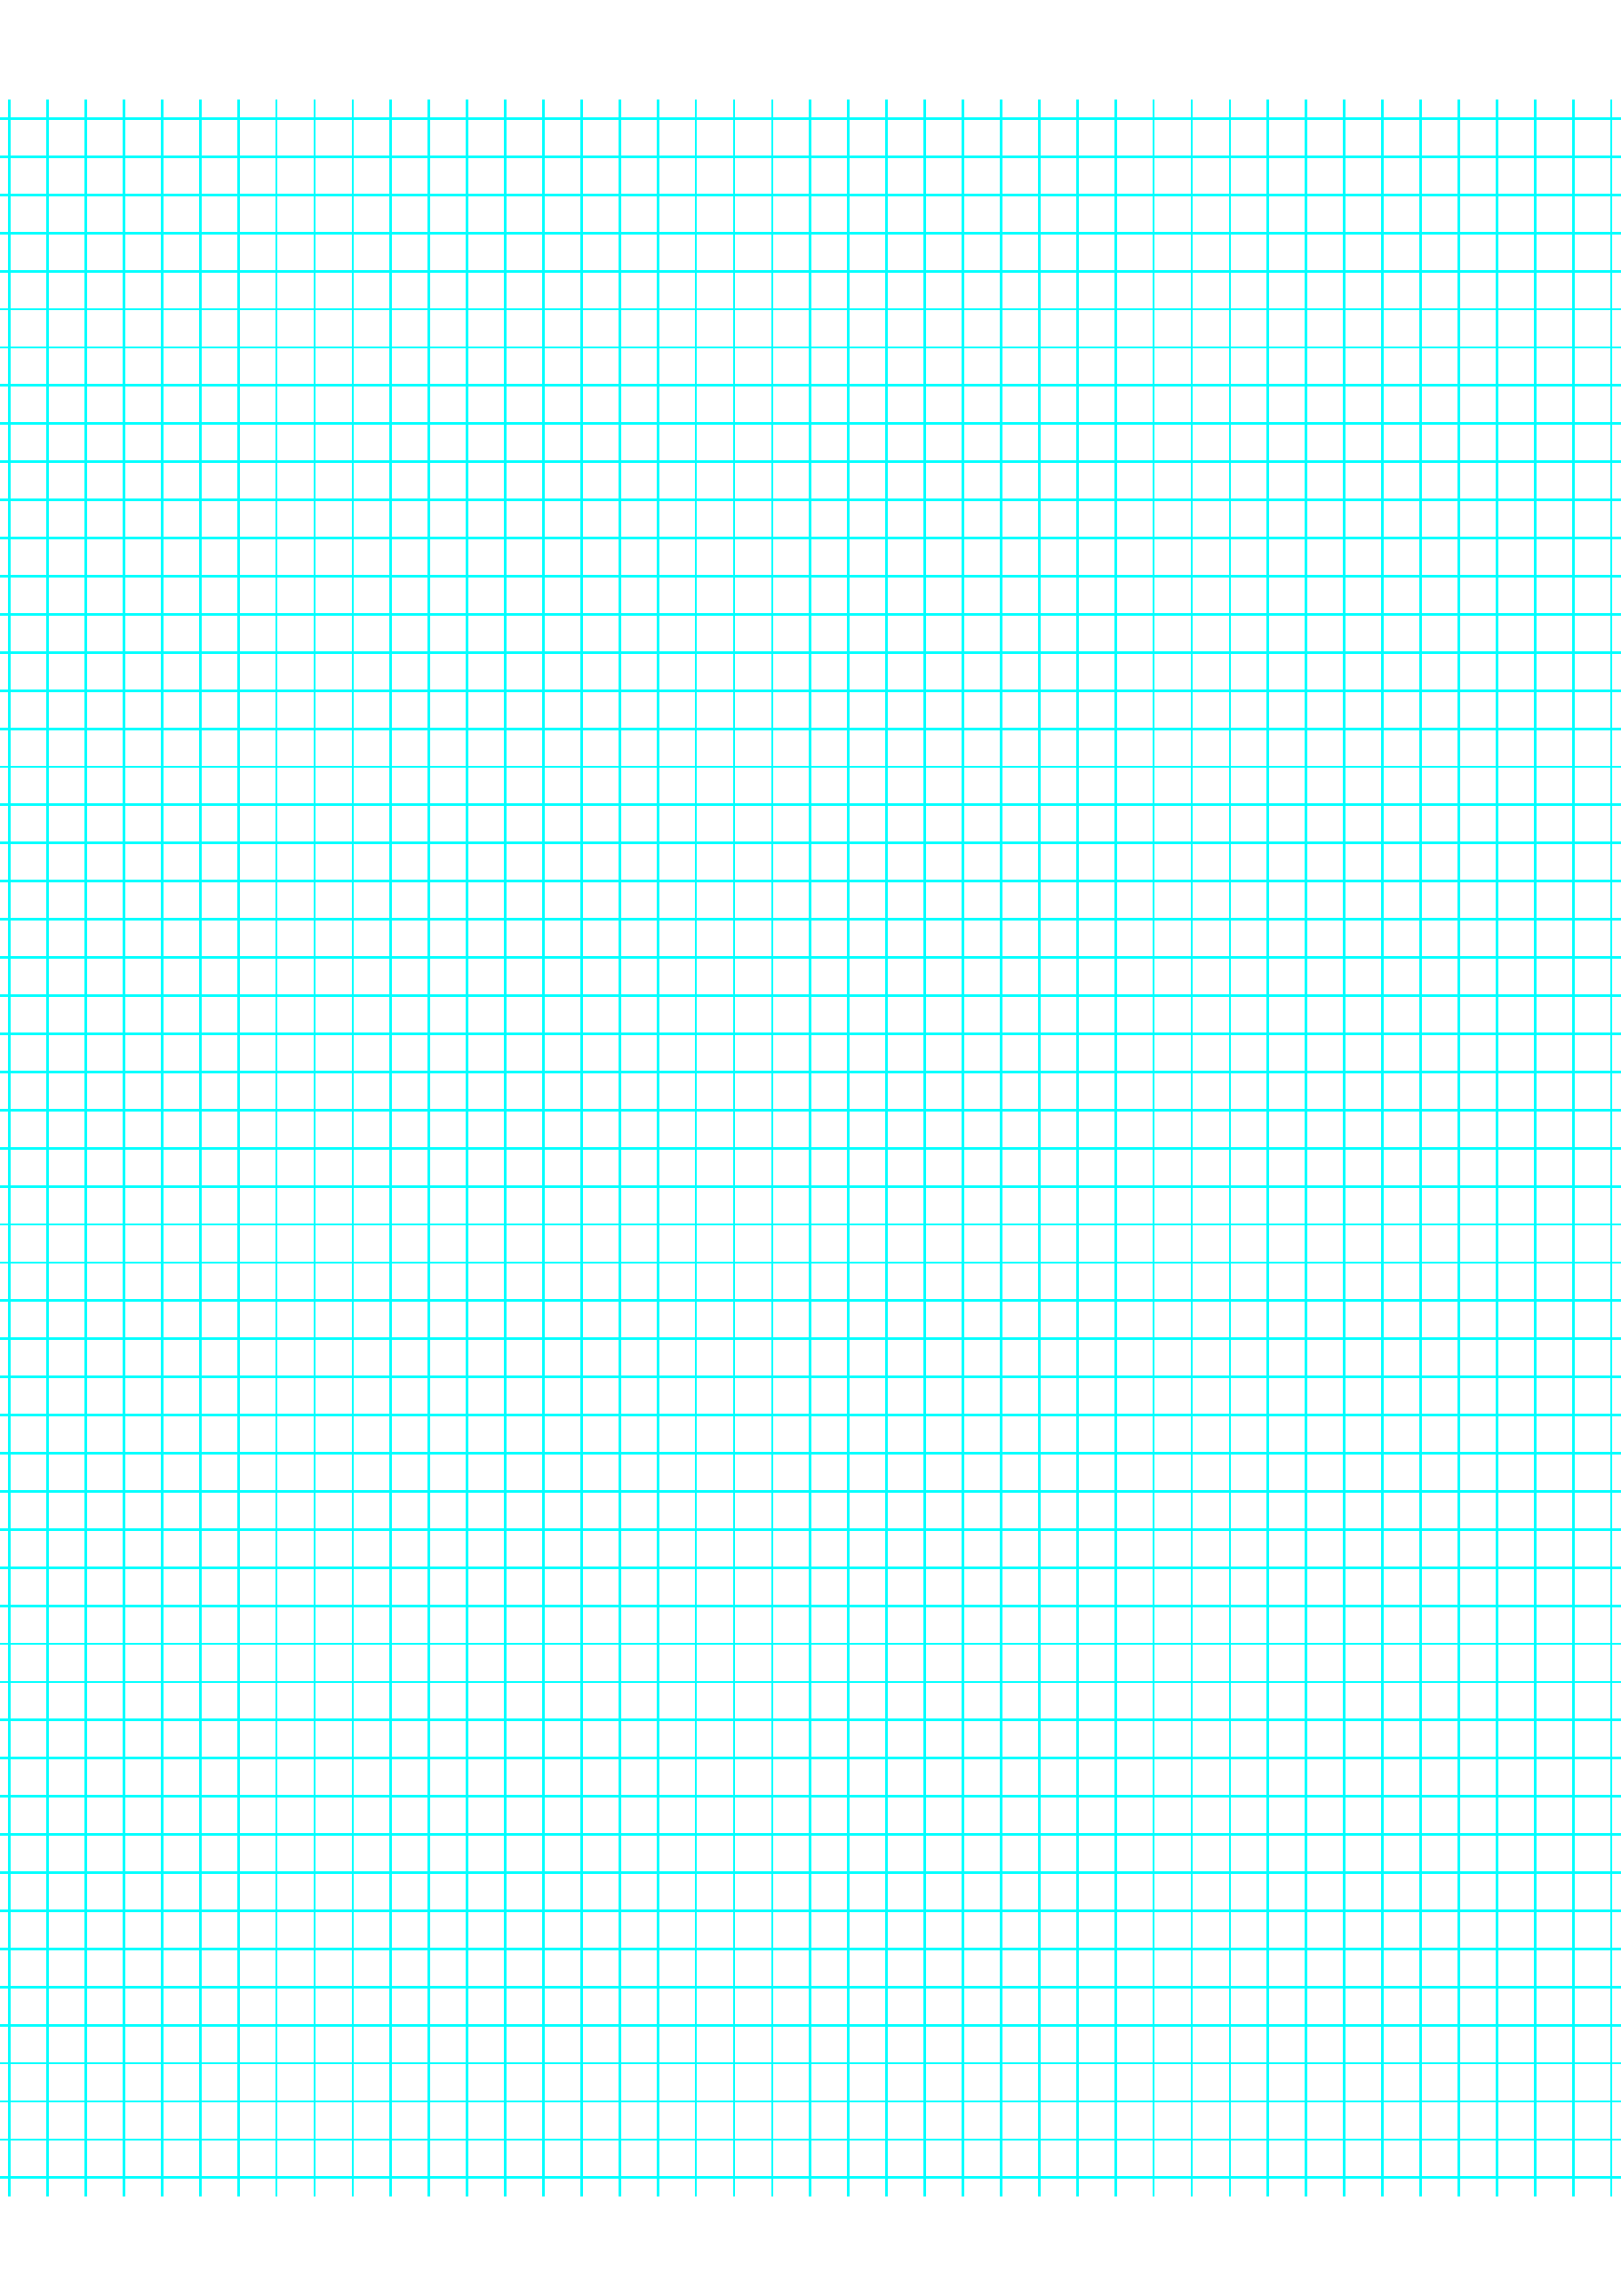 5 Lines per Inch Graph Paper on LetterSized Paper Free Download